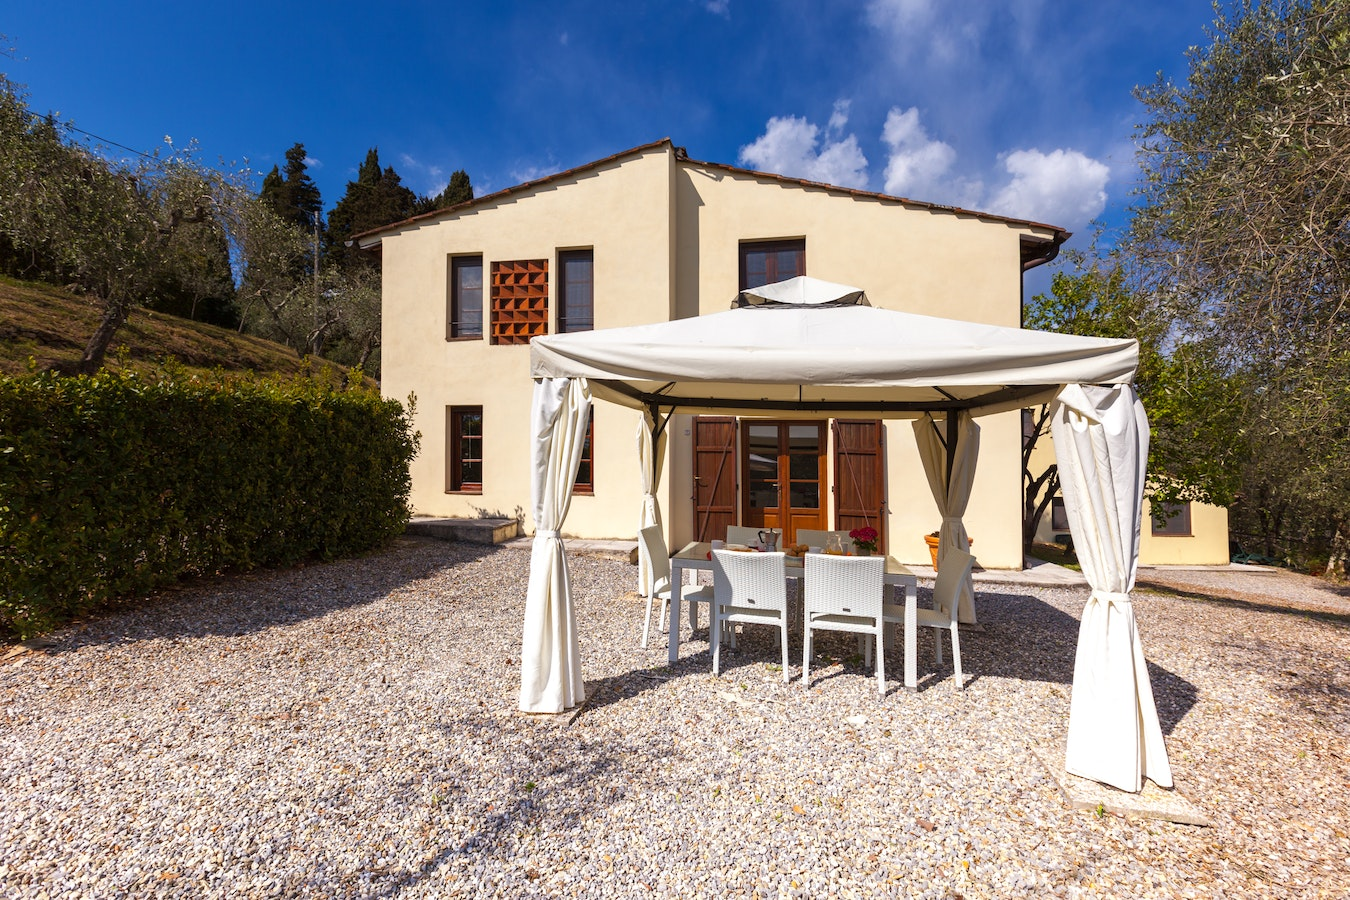 ghiaia holiday villas homes vacation rentals near lucca in tuscany